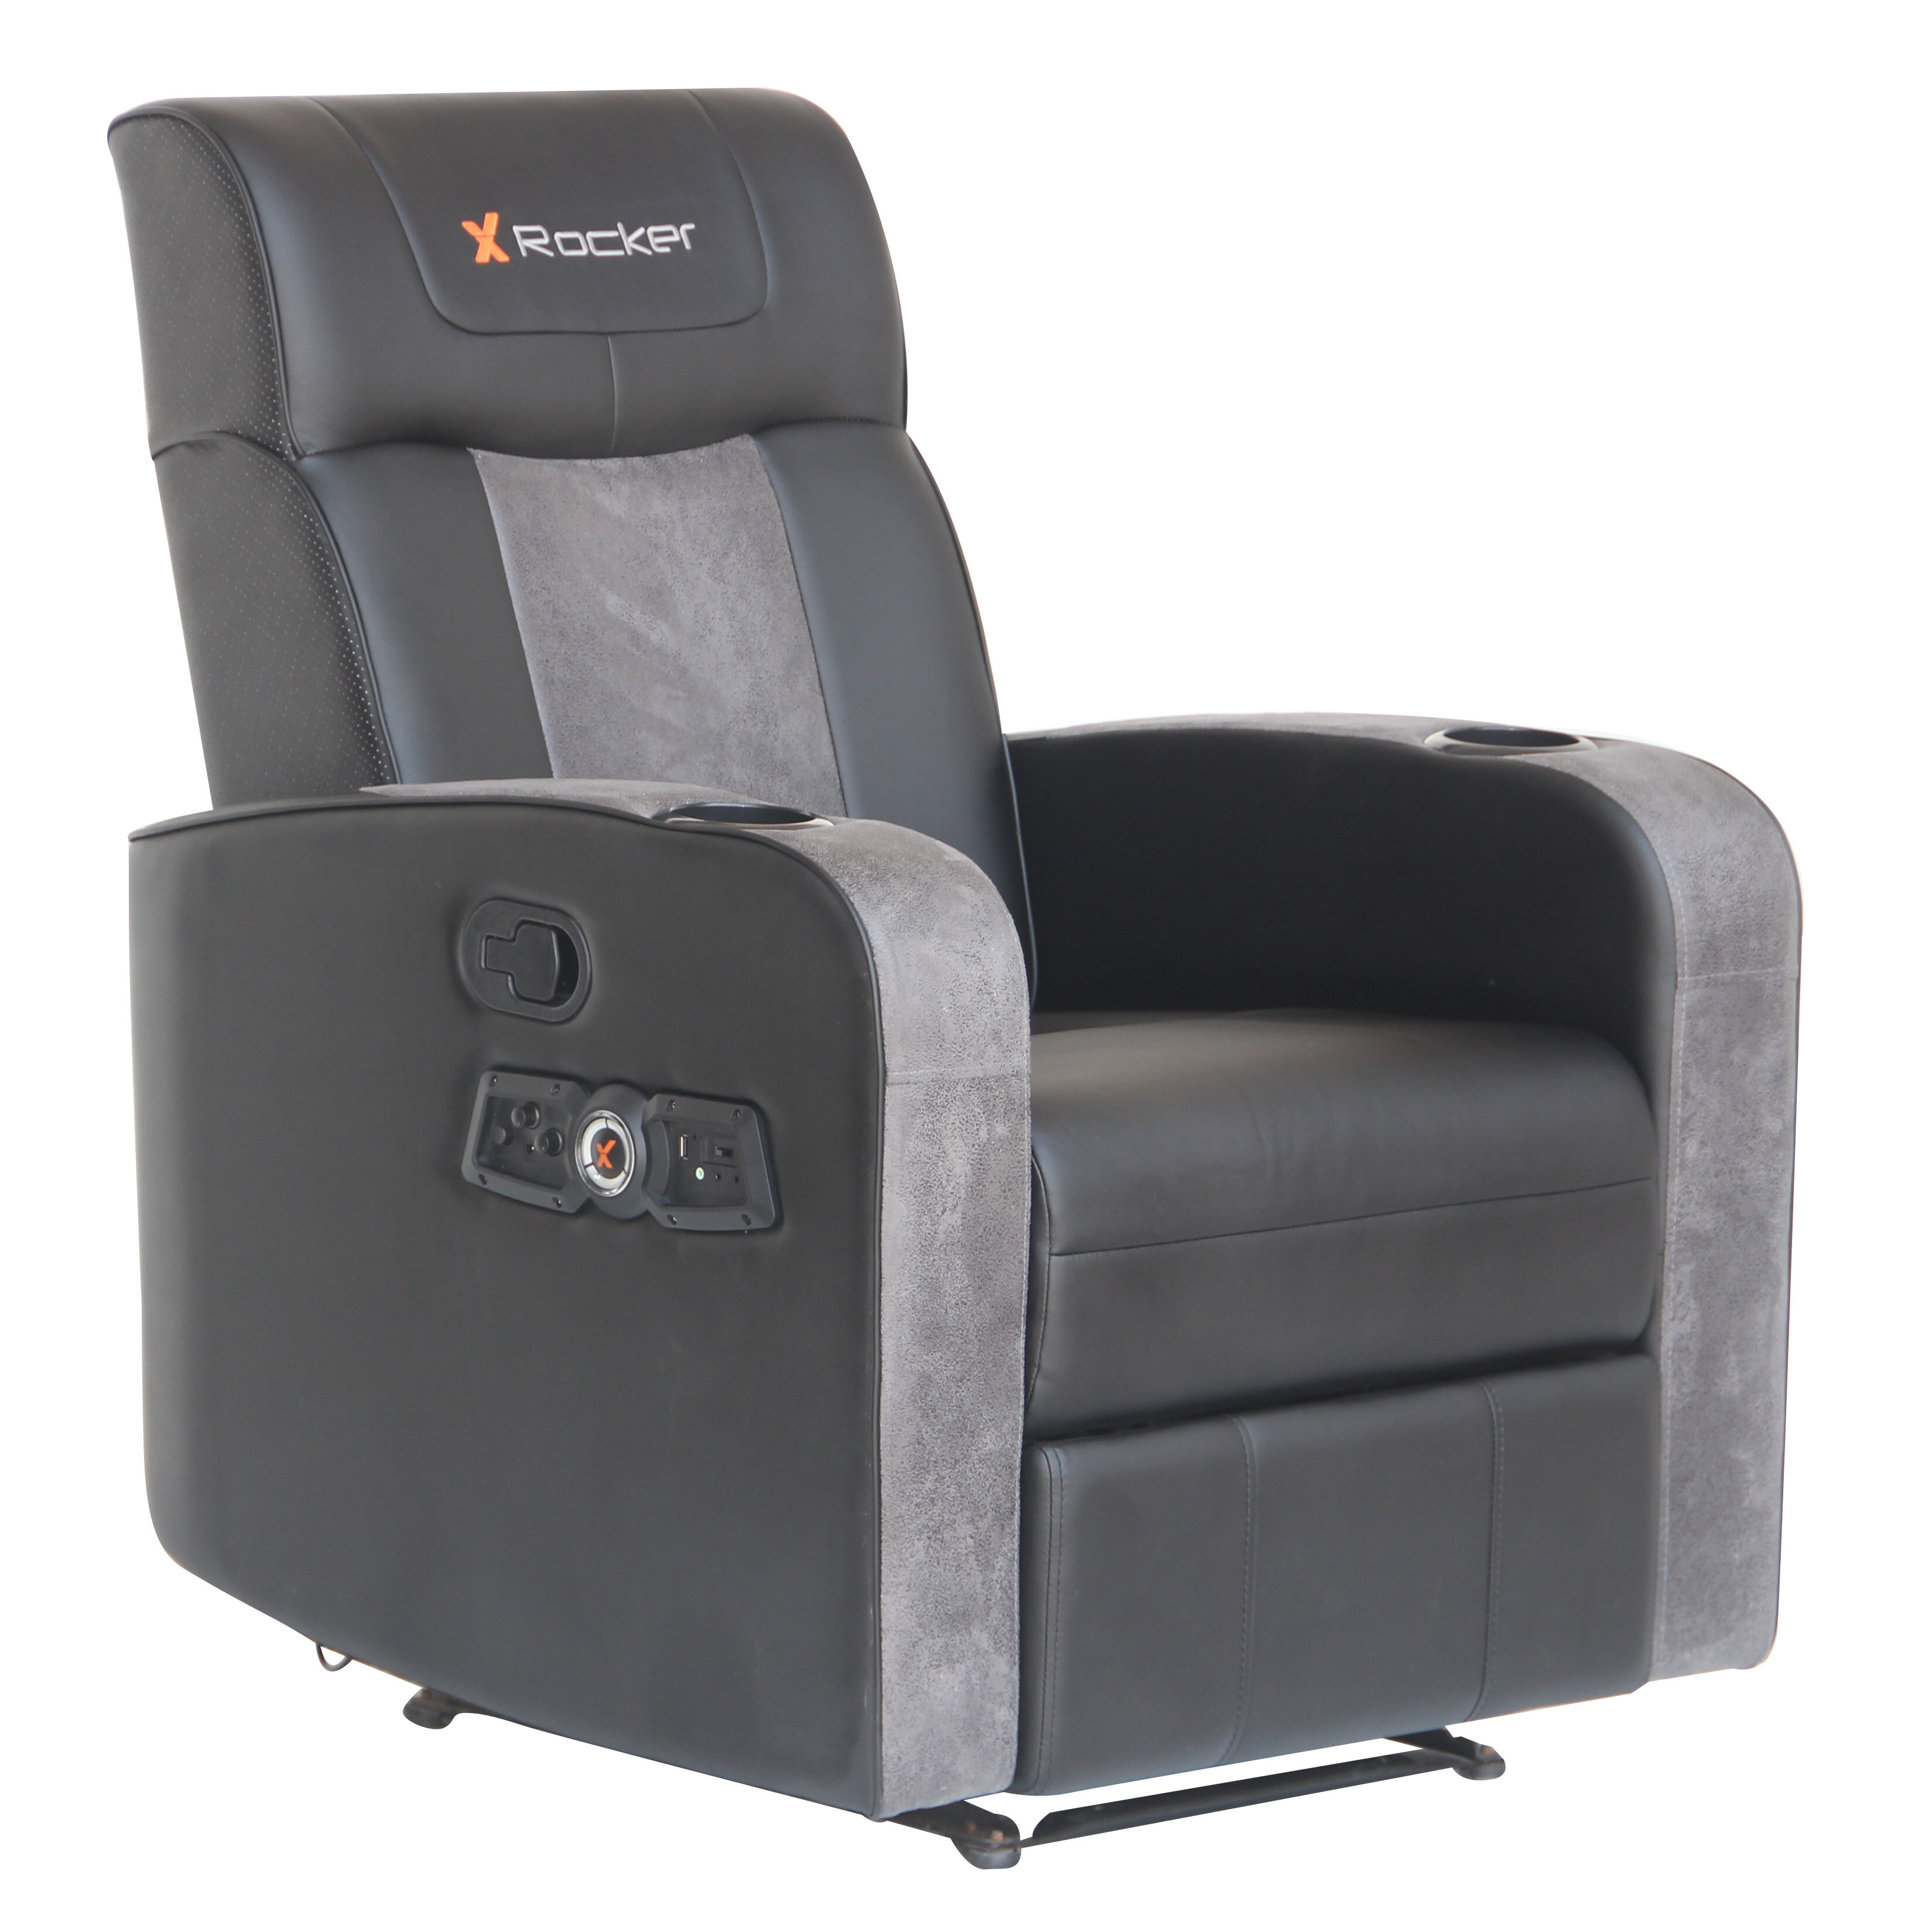 Stupendous Premier Recliner Dual Audio Pc Racing Game Chair Caraccident5 Cool Chair Designs And Ideas Caraccident5Info